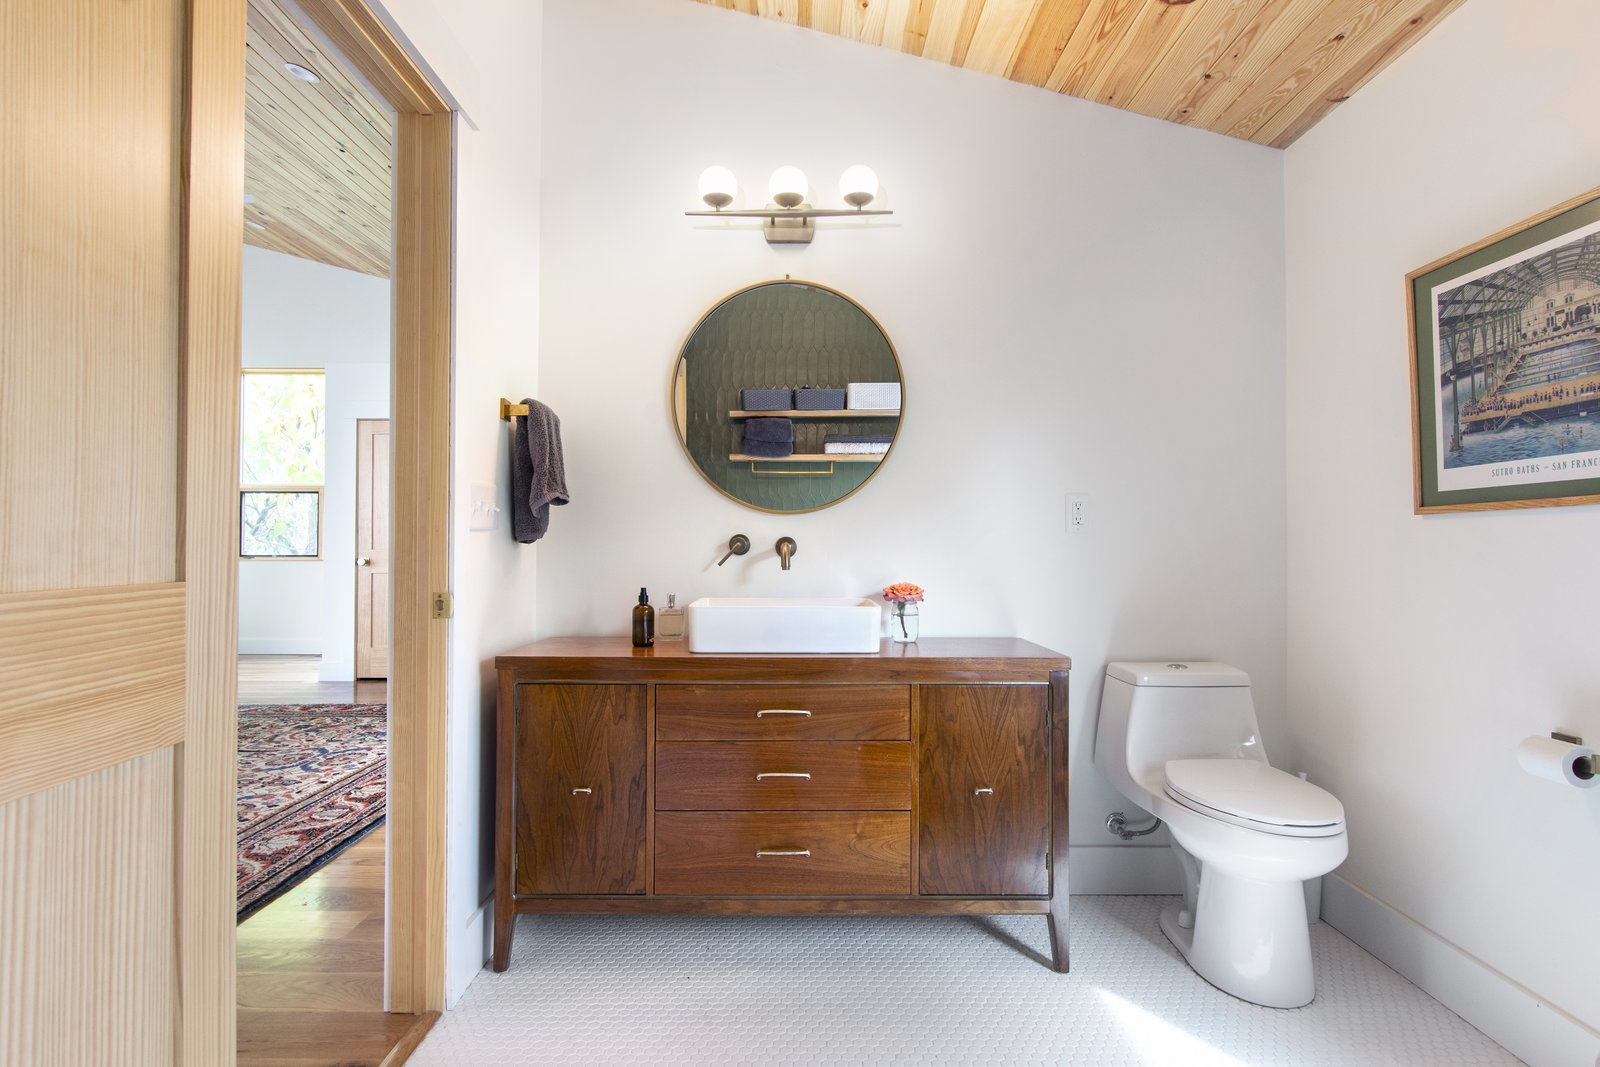 Bath Room, Open Shower, One Piece Toilet, Vessel Sink, Wall Lighting, Wood Counter, and Ceramic Tile Floor Vintage furniture used as a bath vanities saved on the budget.  Westwood House